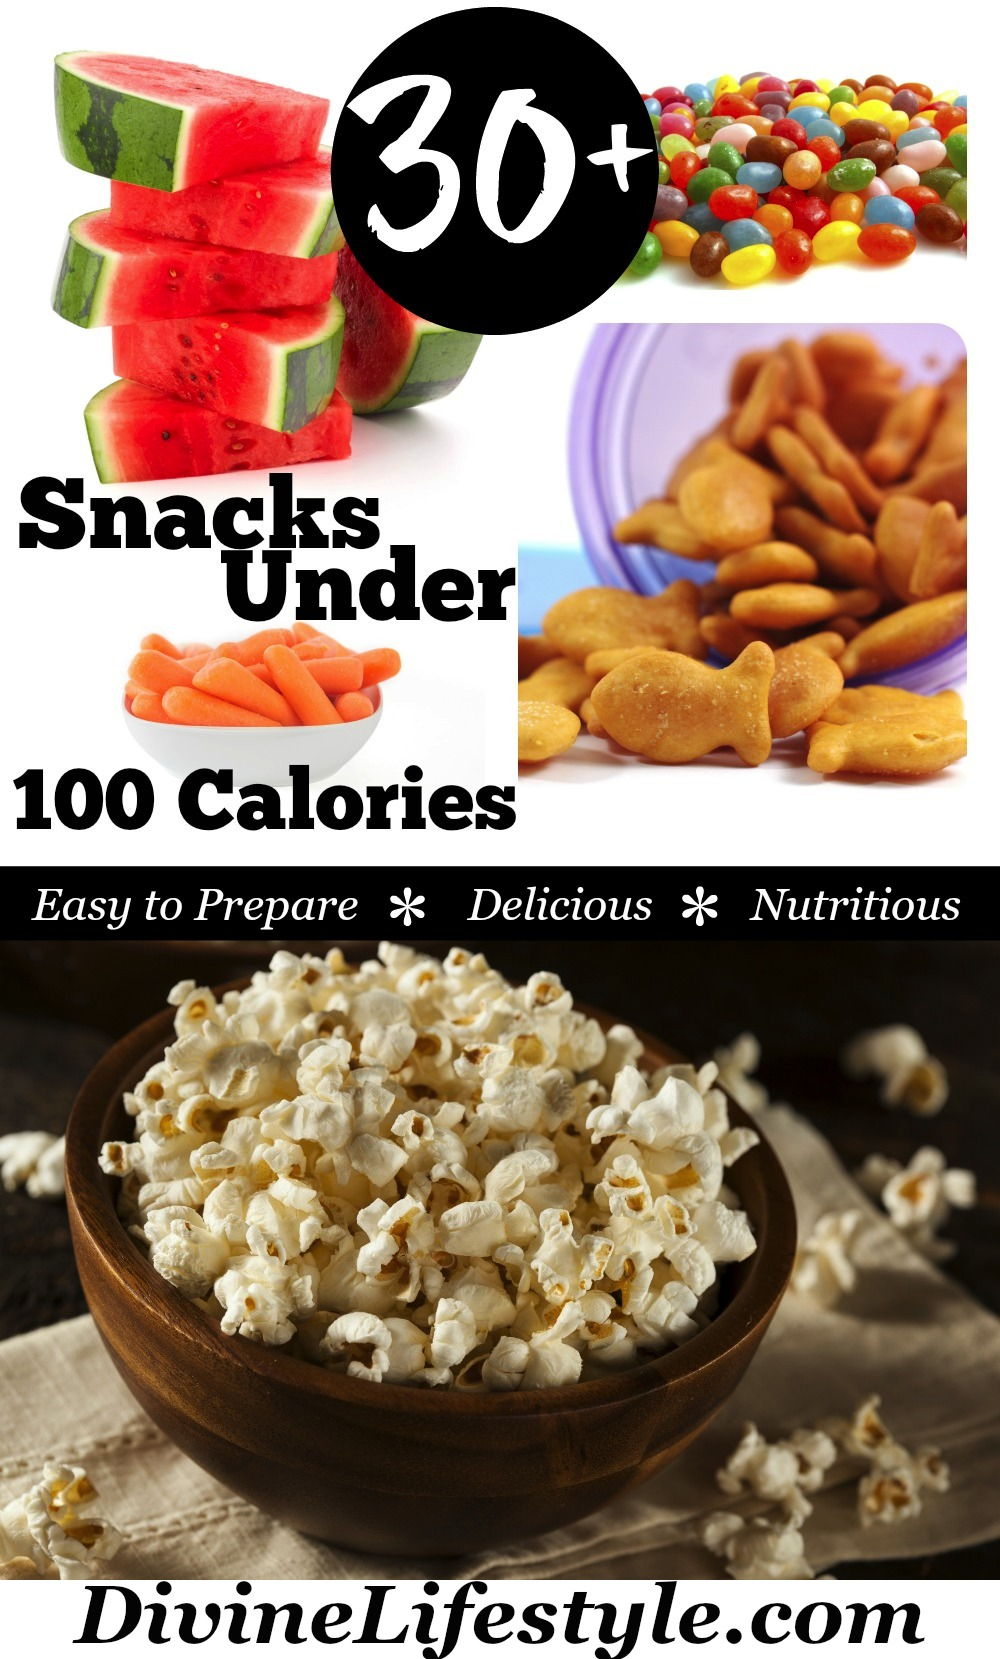 30+ Snacks Under 100 Calories